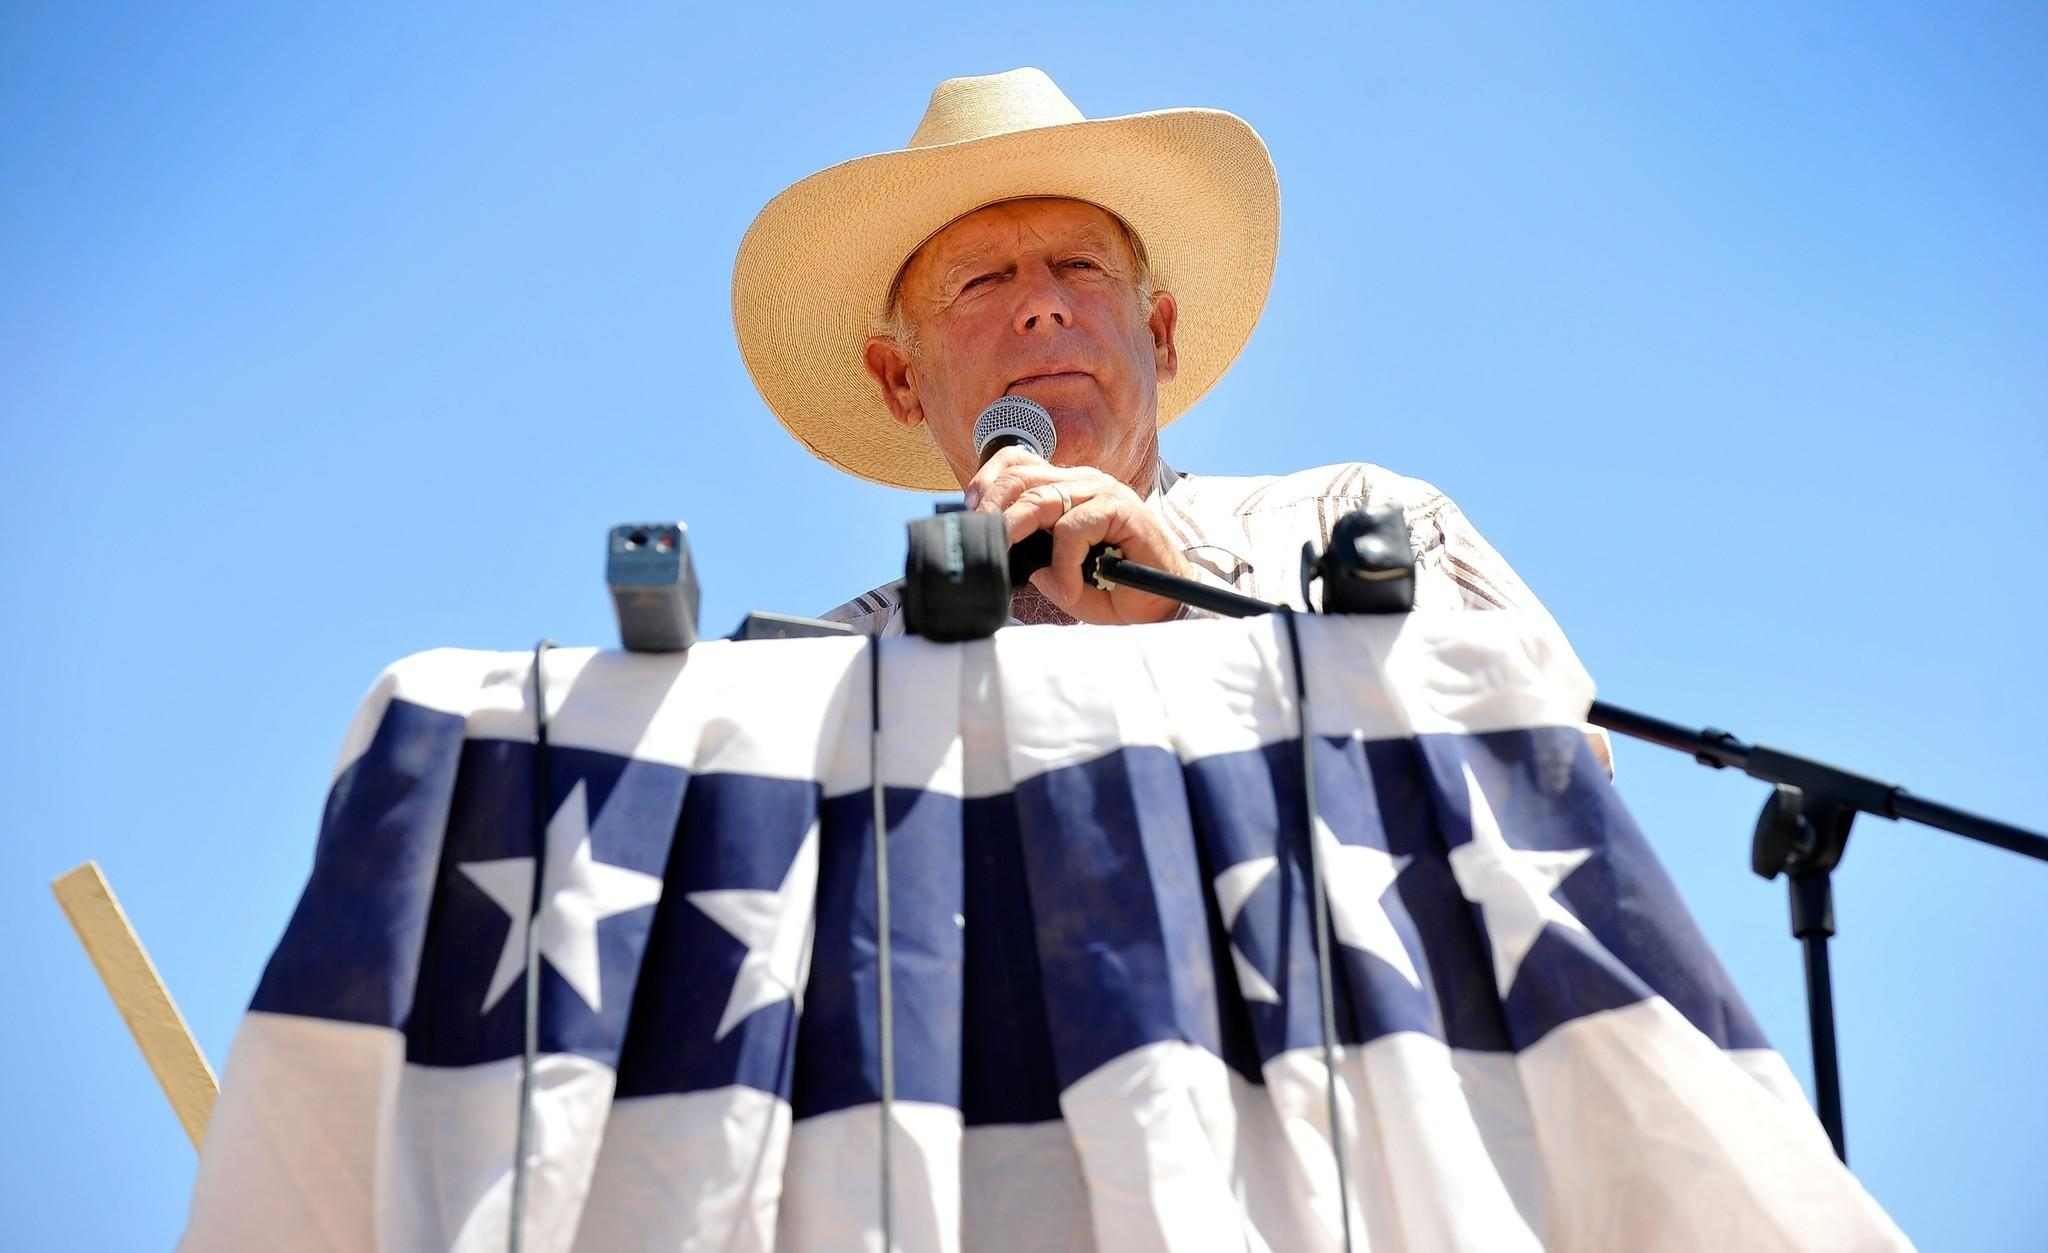 Cliven Bundy, the Nevada rancher embroiled in a dispute with the Bureau of Land Management, apologized if his comments on African Americans and slavery offended anyone.